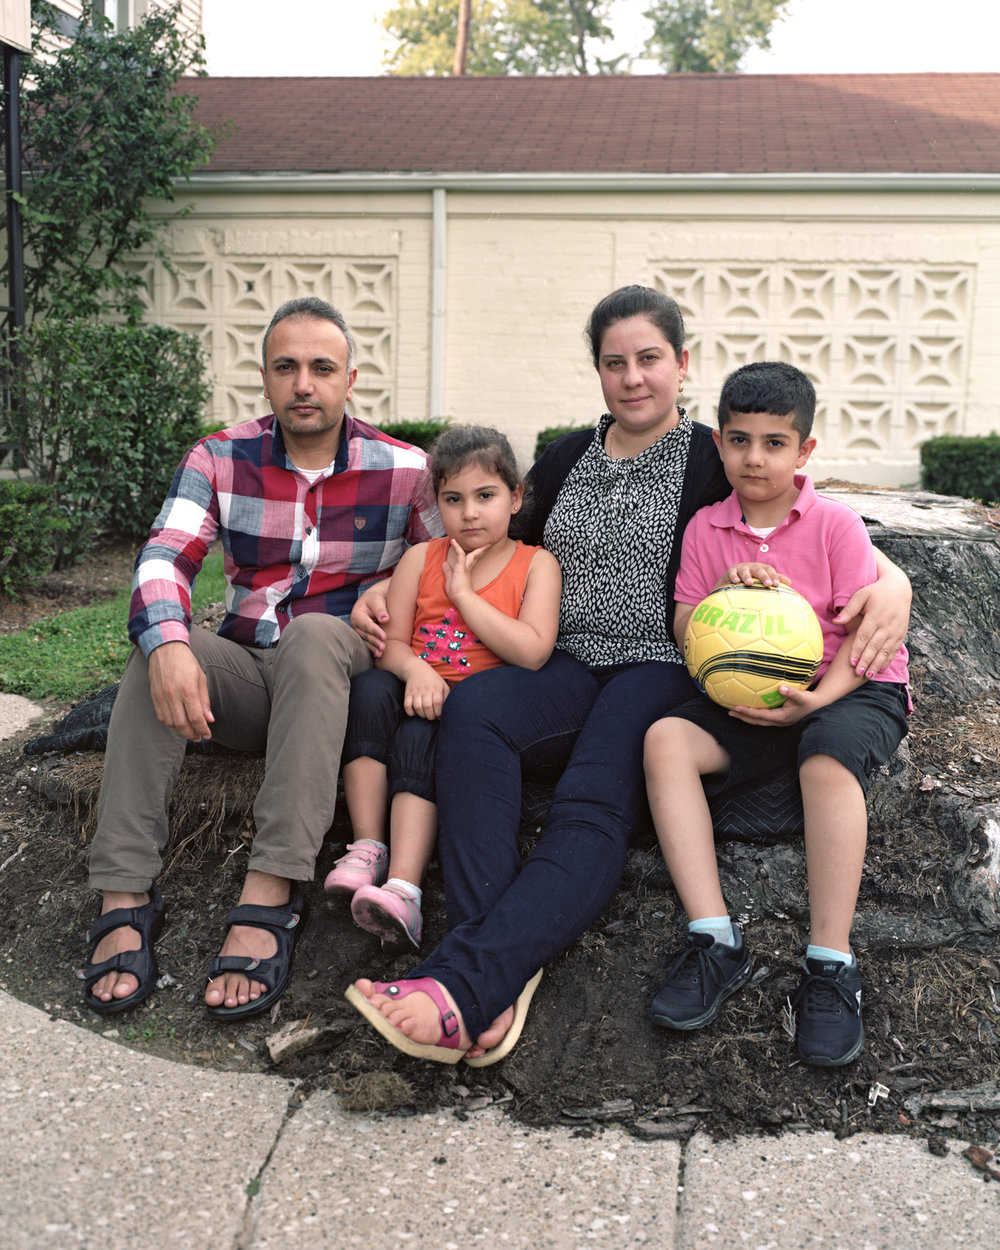 Newly Arrived Family from Syria in Toledo, Ohio (Youssef, Shahank, Rouda, Mohammed) (2016)